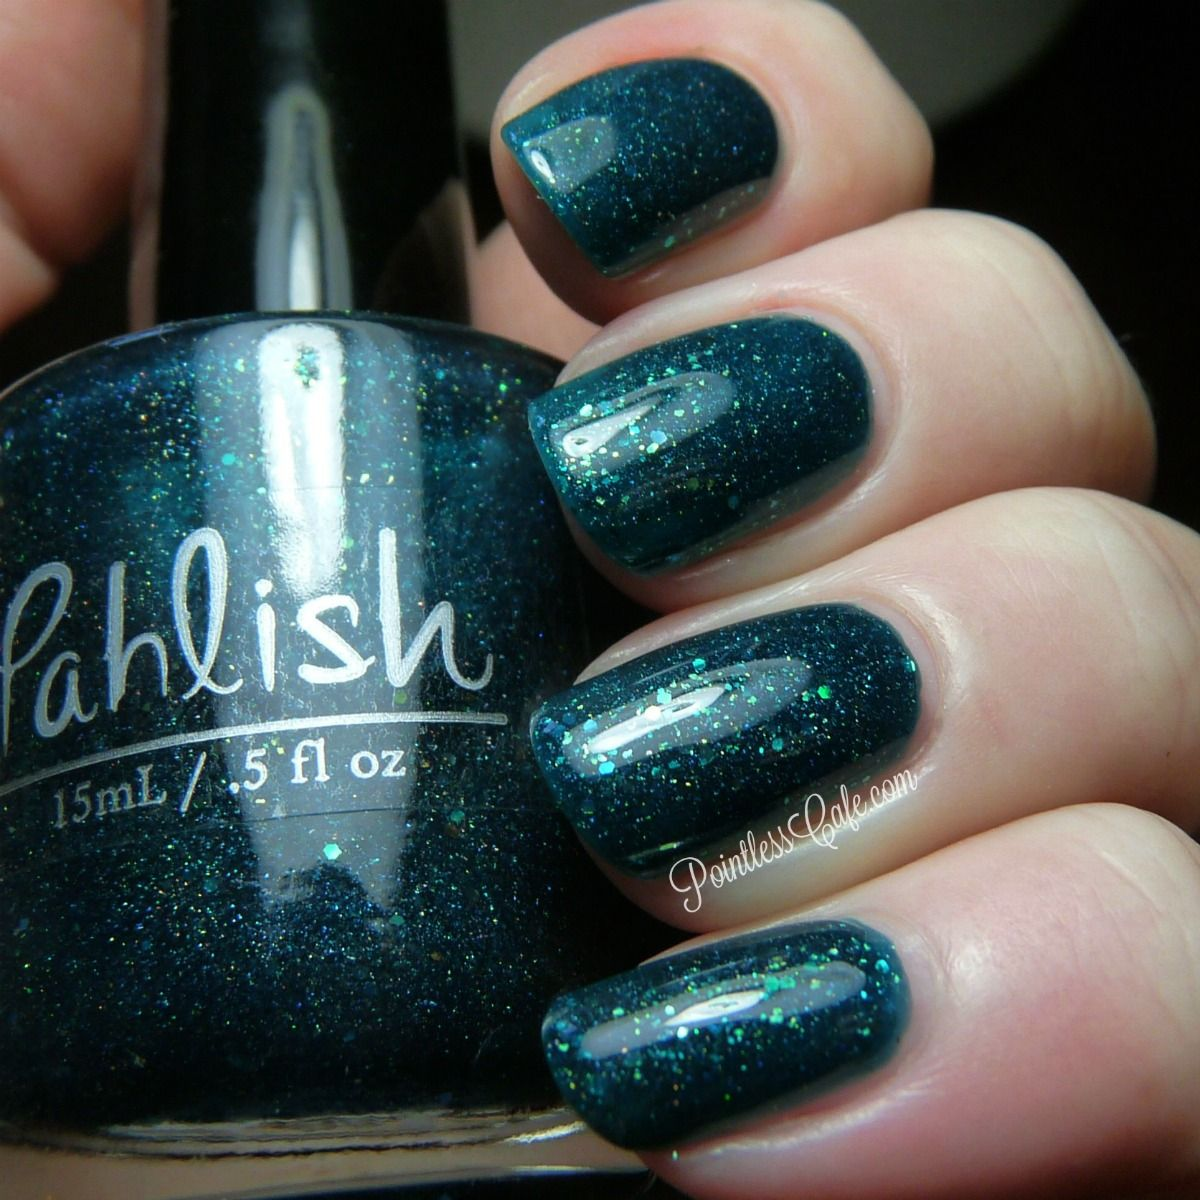 Pahlish: Dangerous Muted Lunatic ... a medium-to-dark turquoise/teal ...